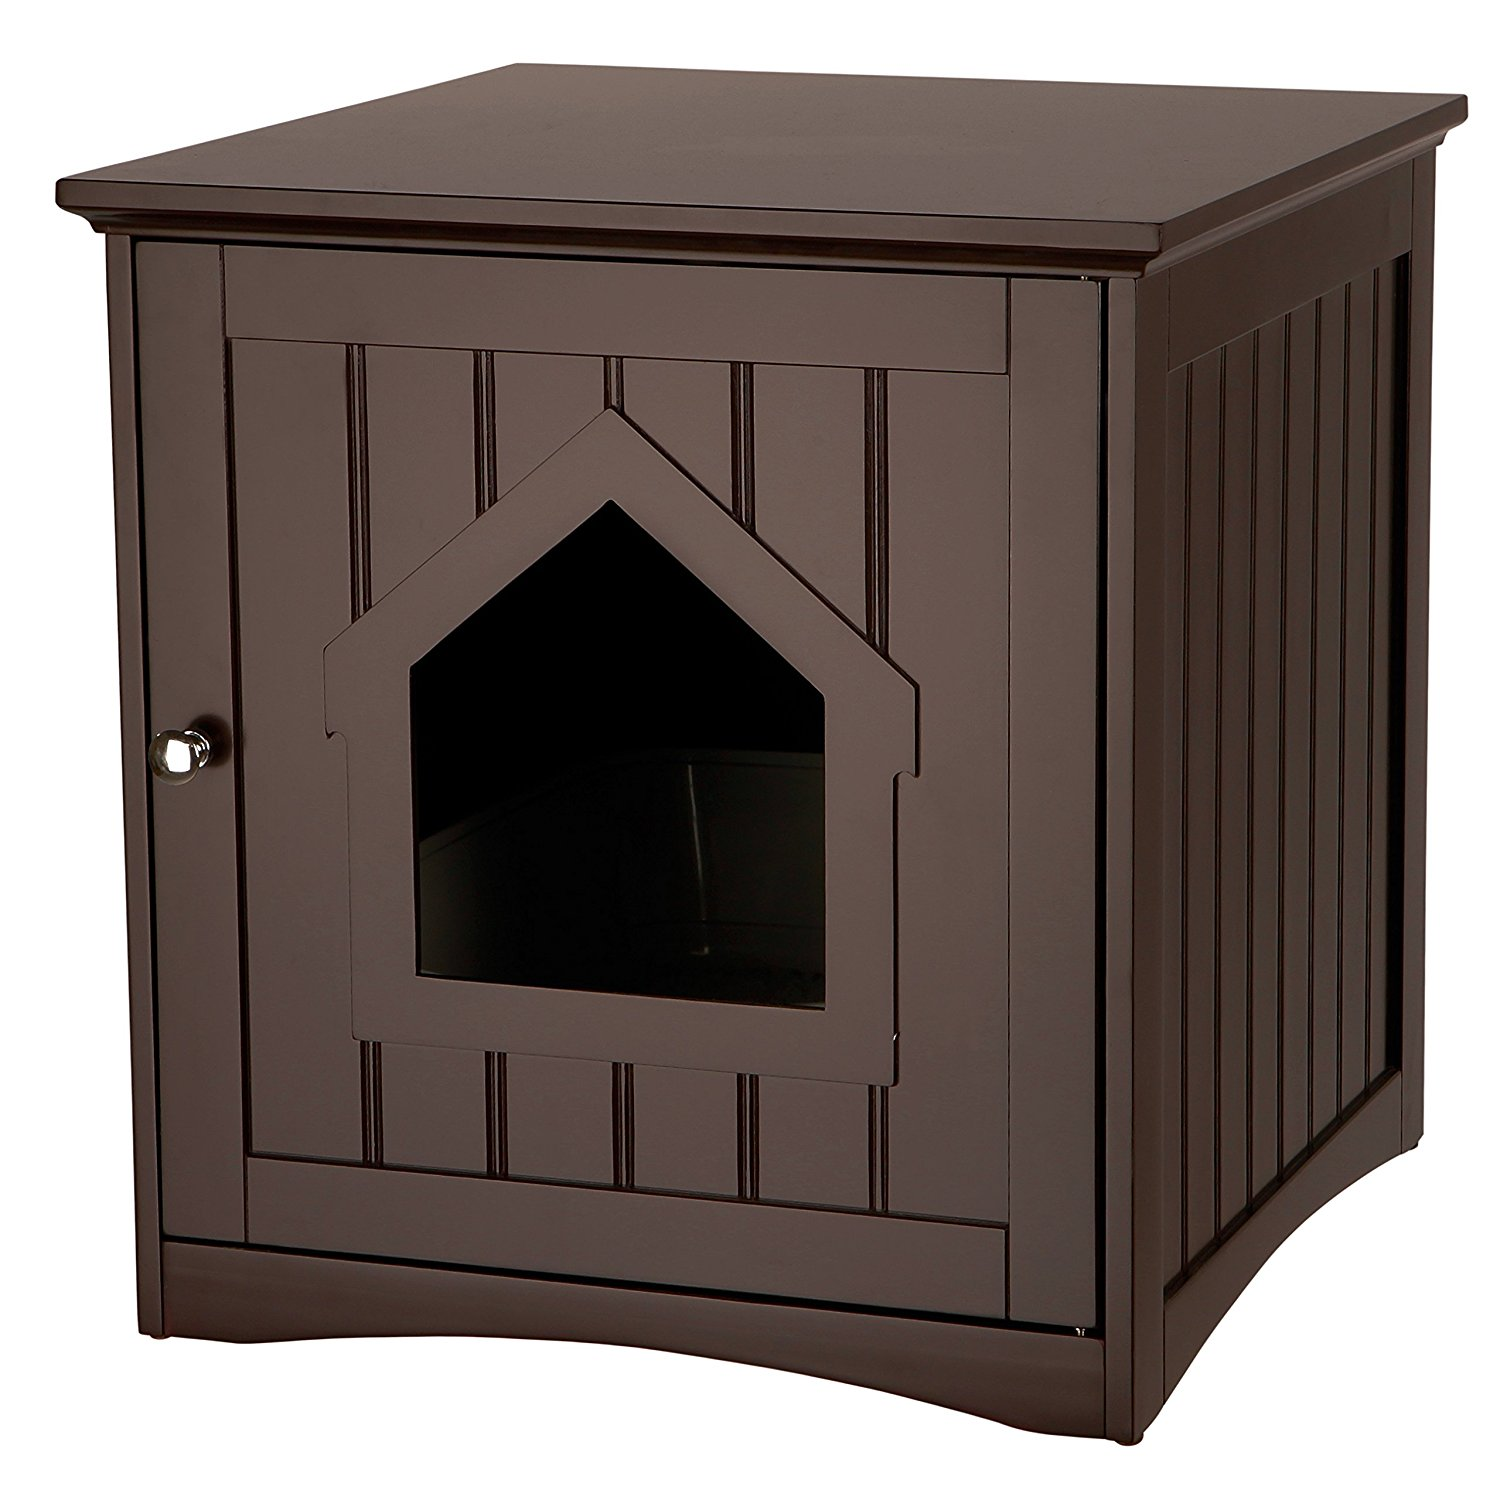 Trixie Pet Products Wooden Cat Home & Litter Box